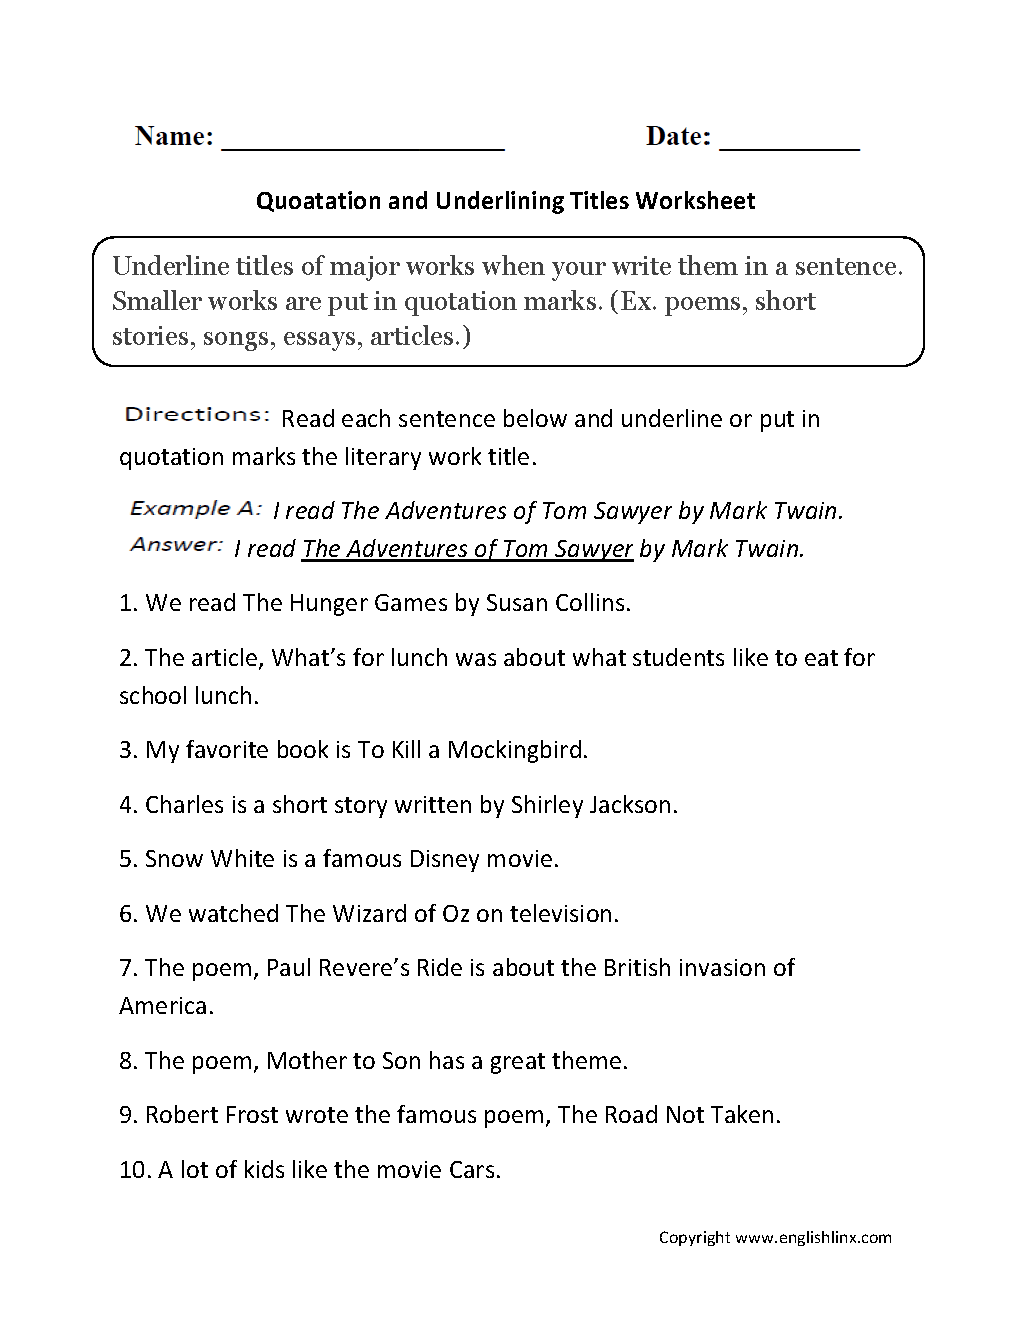 grammar mechanics worksheets italics and underlining worksheets quotation and underlining titles worksheets